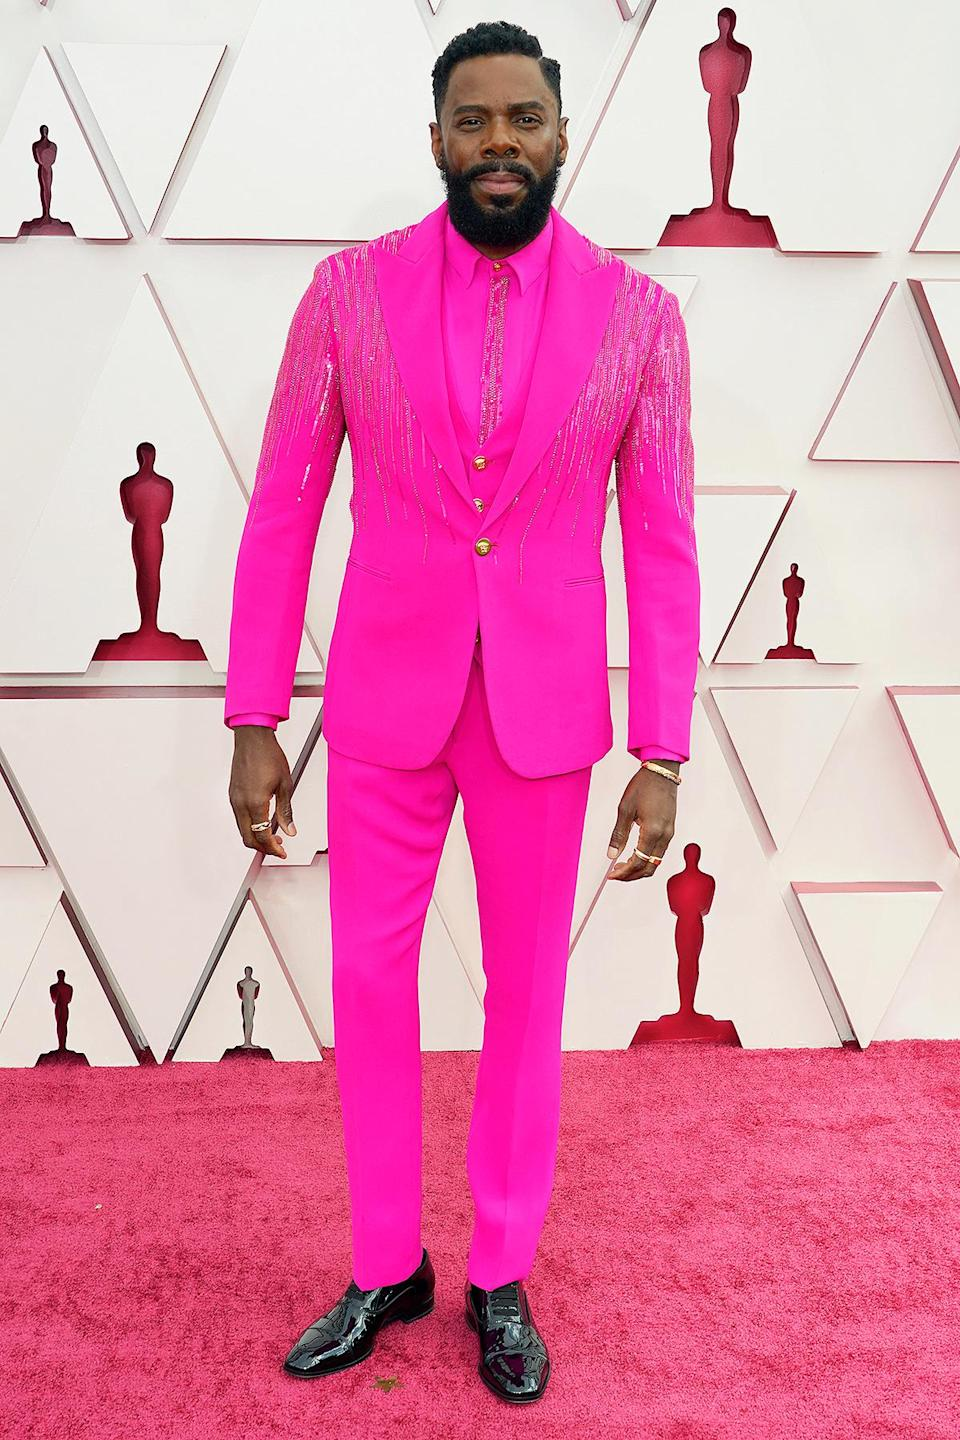 <p>pops in pink in his bright fuchsia Atelier Versace three-piece suit with sequin accents, gold David Yurman jewels and black Christian Louboutin dress shoes.</p>